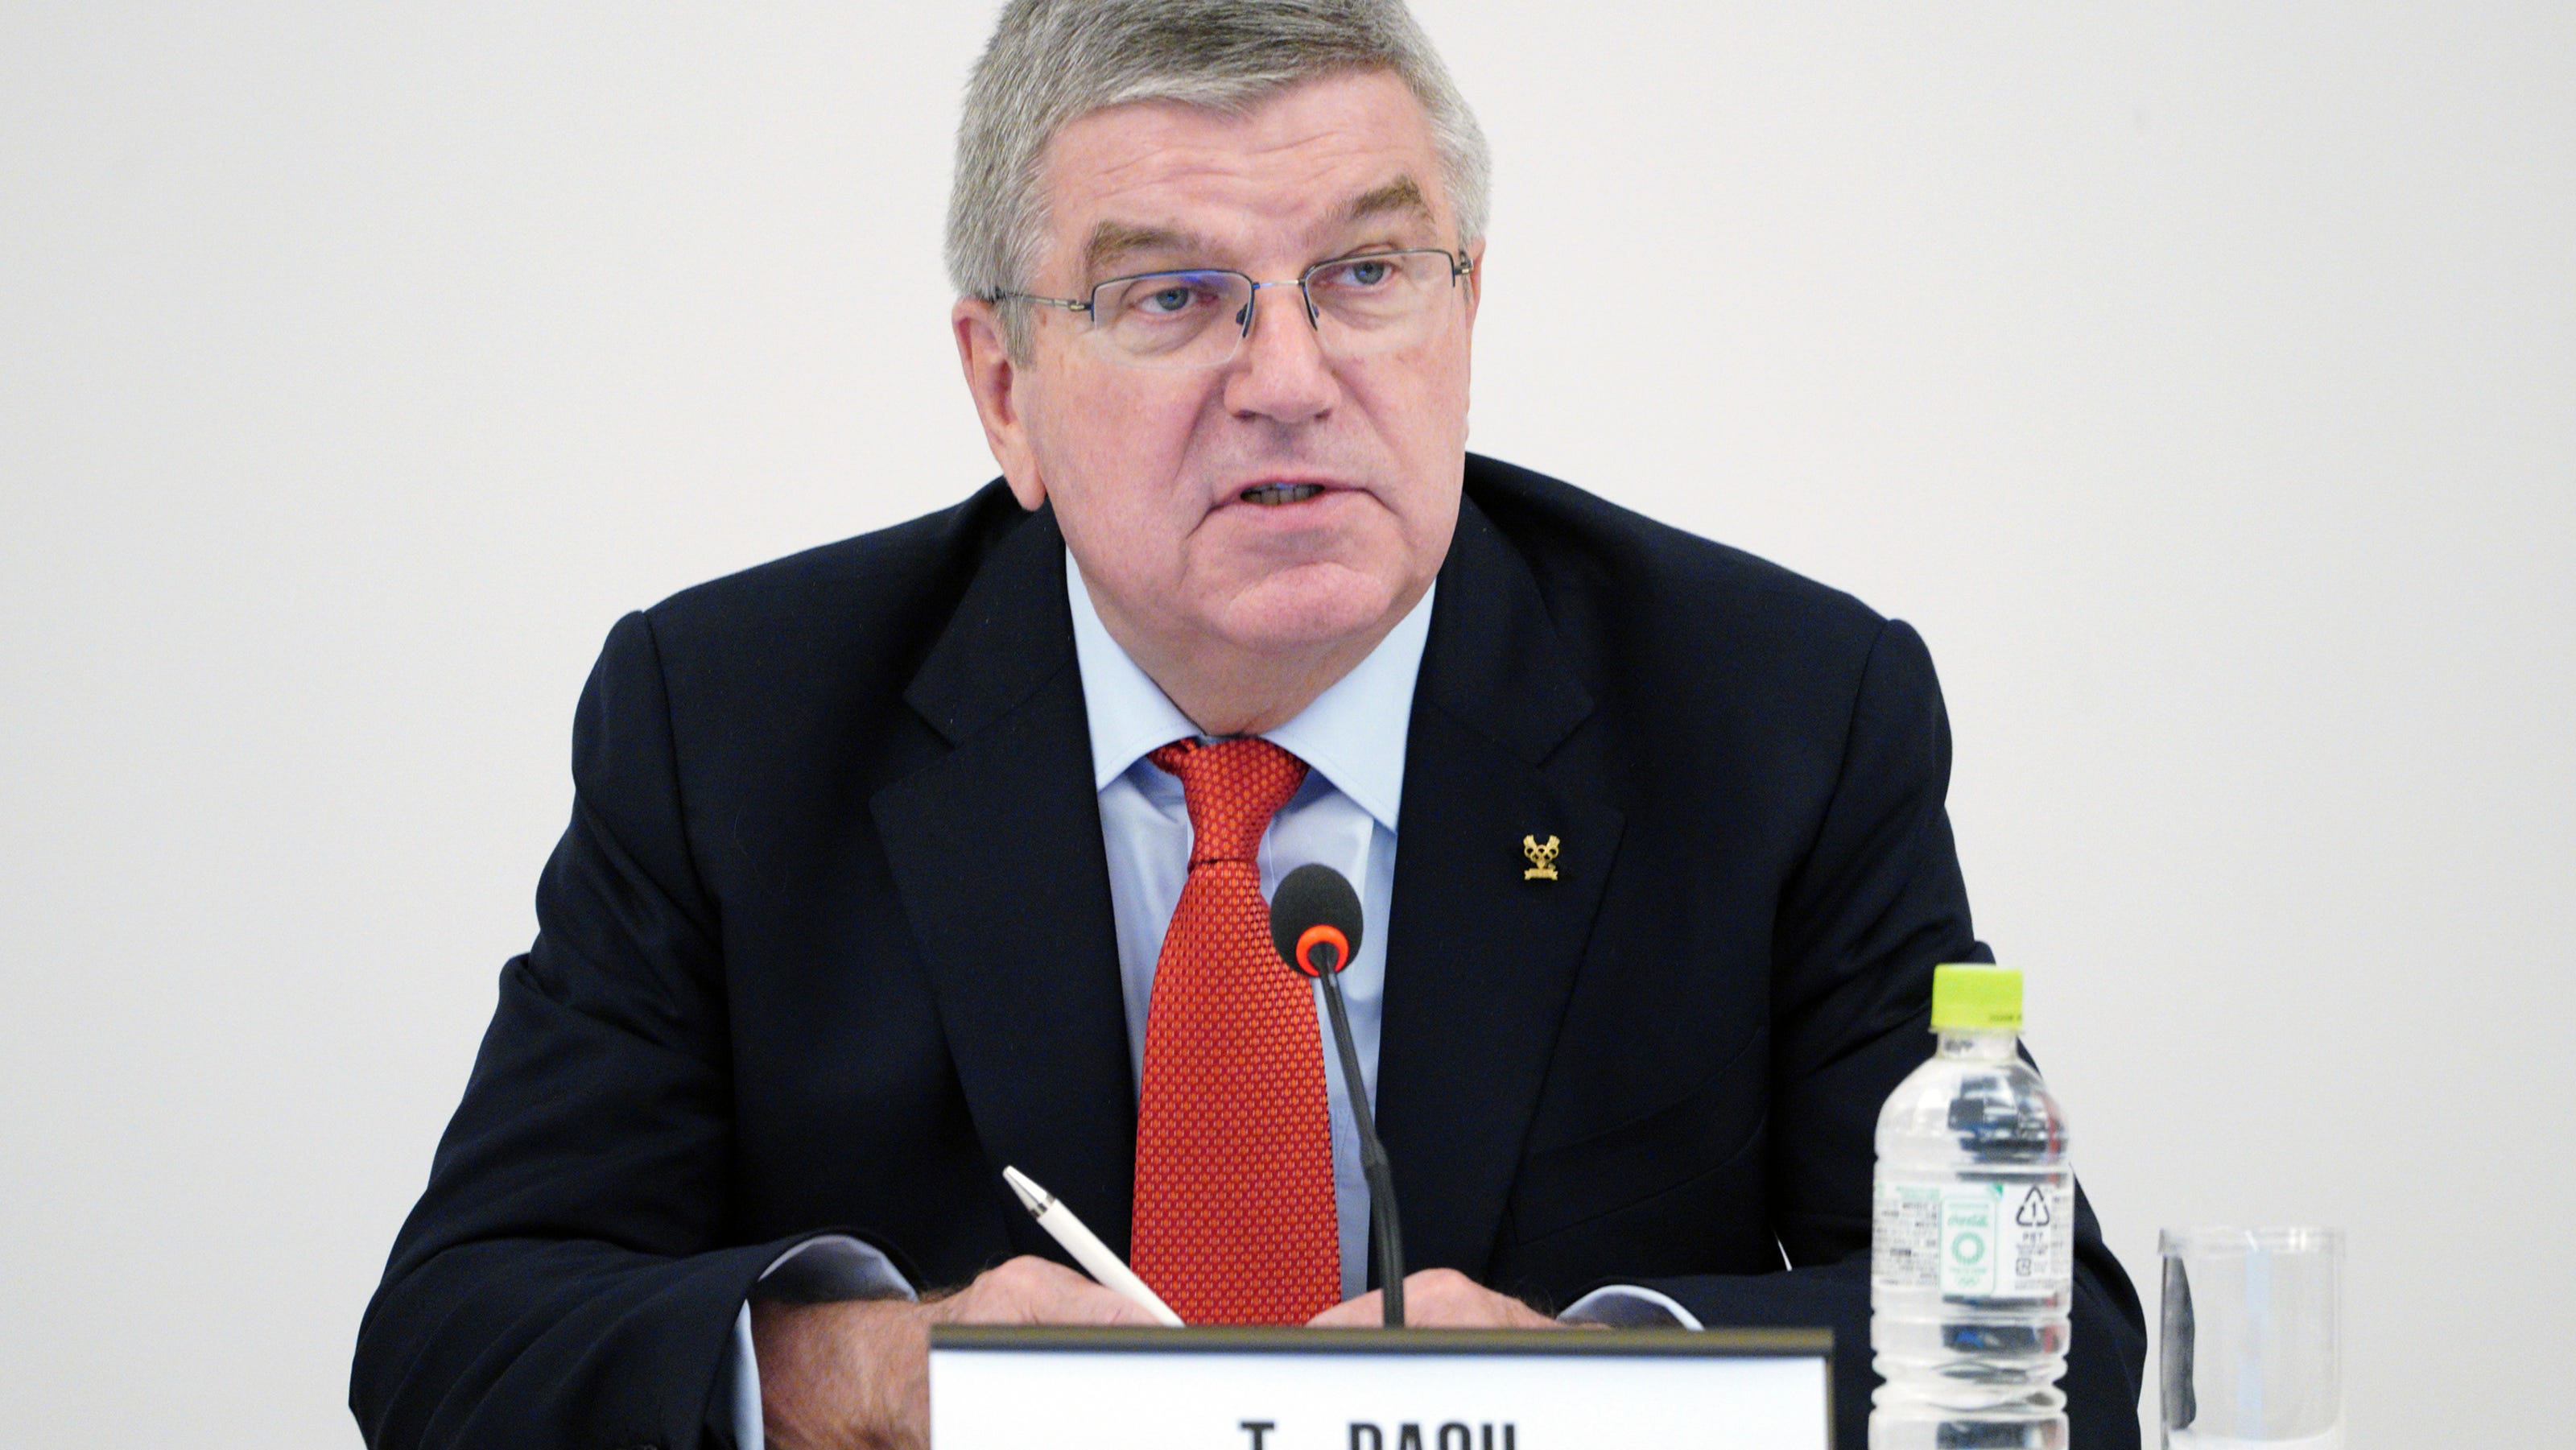 Ioc Sets Up Human Rights Advisory Committee Starting In 2024